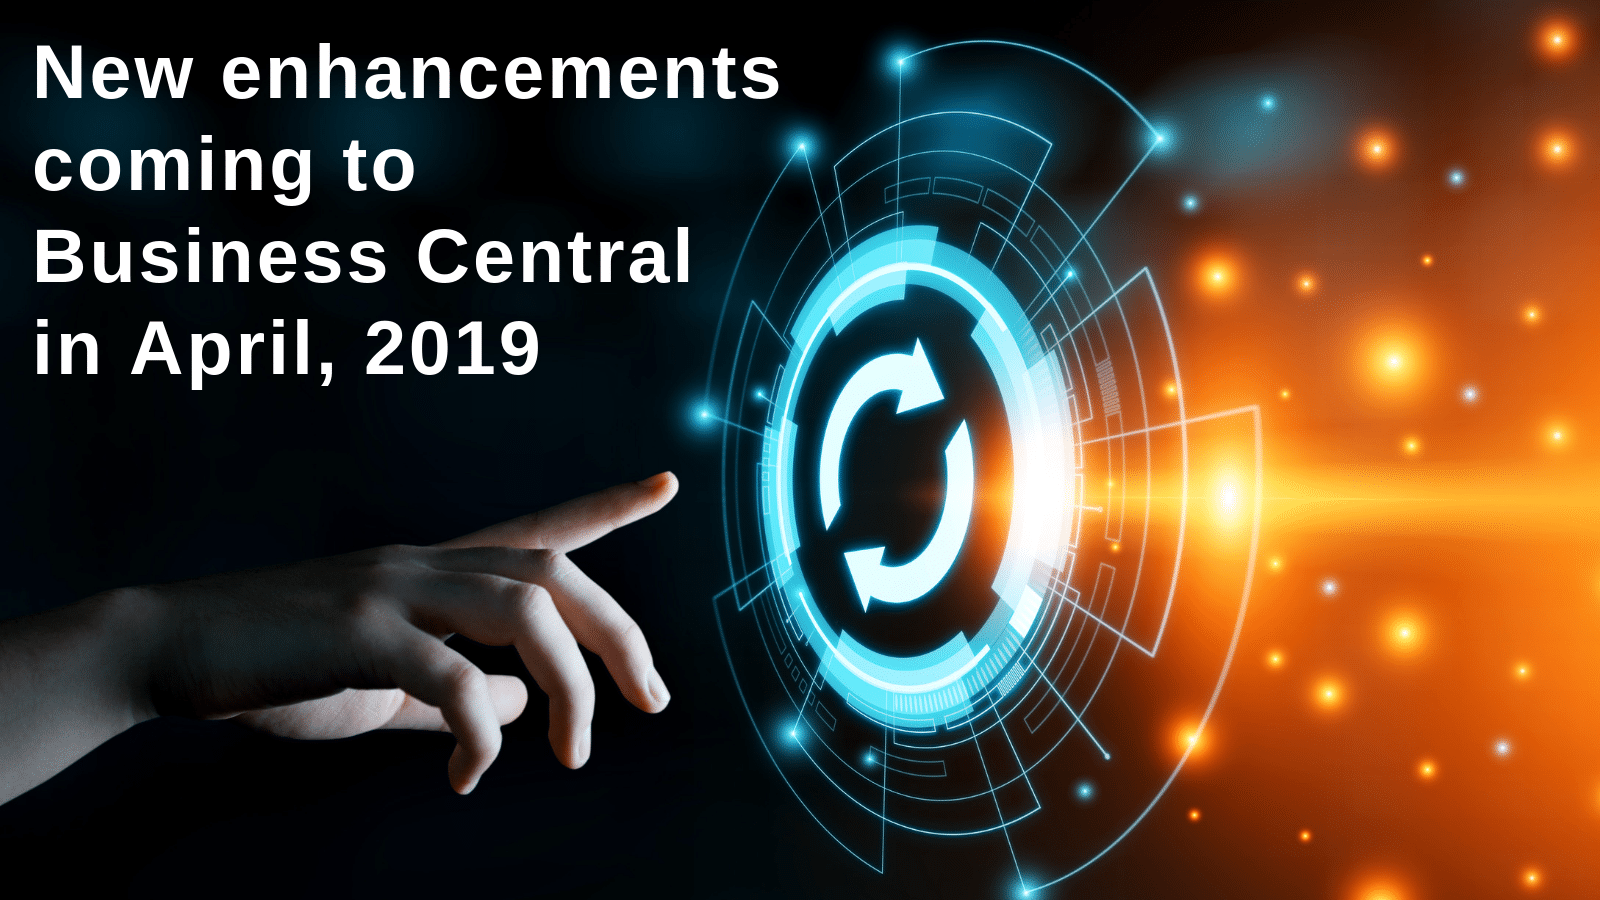 Enhancements coming to Business Central in April 2019